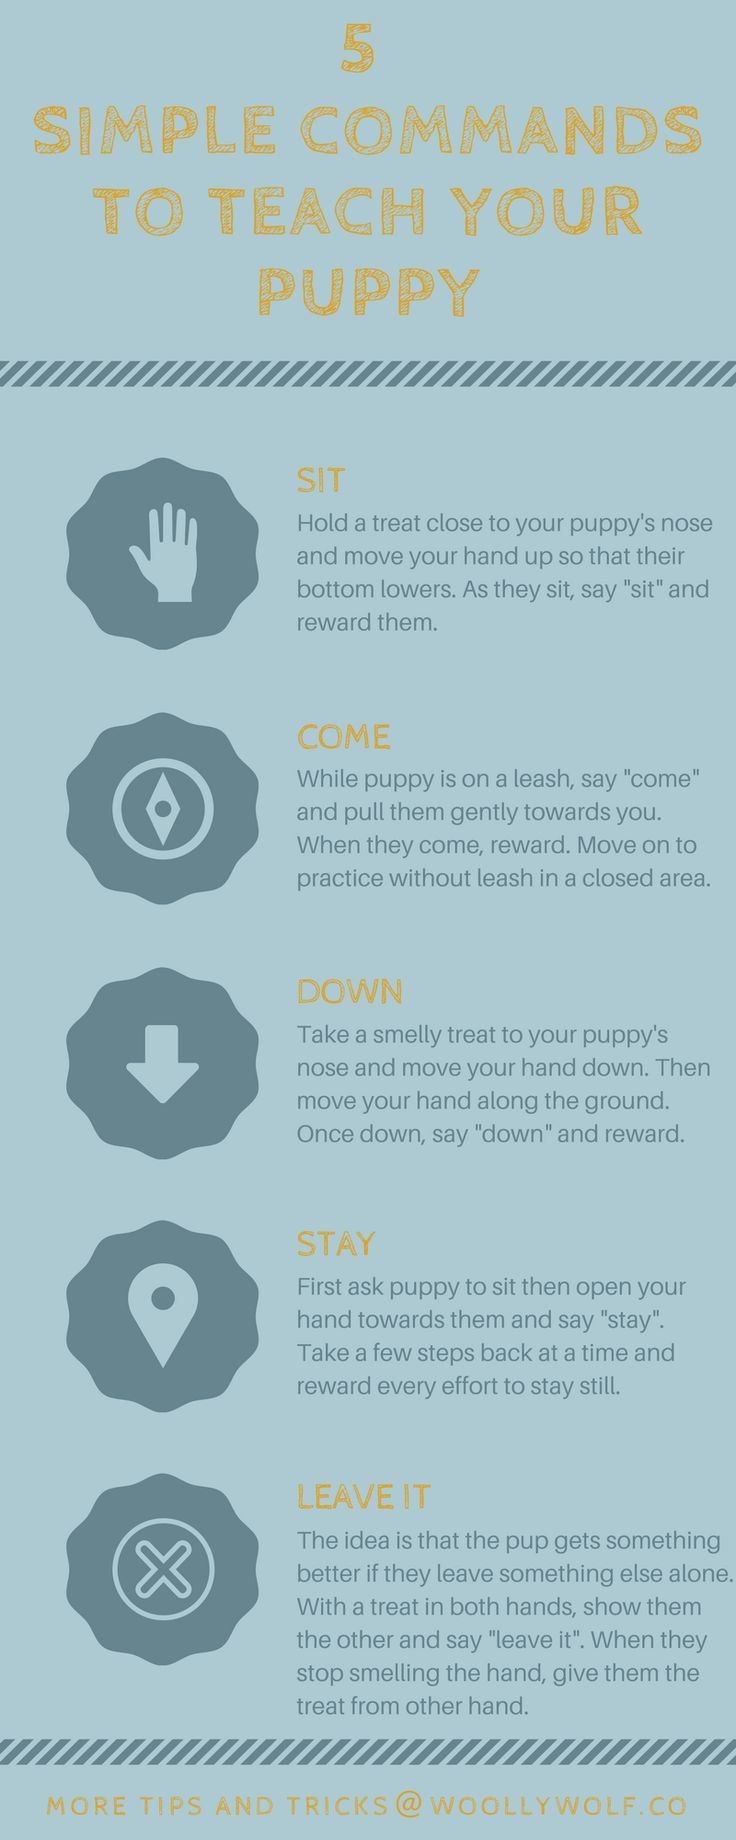 5 Simple Commands to teach your puppy. Puppy training tips, dog training ideas. By Woolly Wolf.